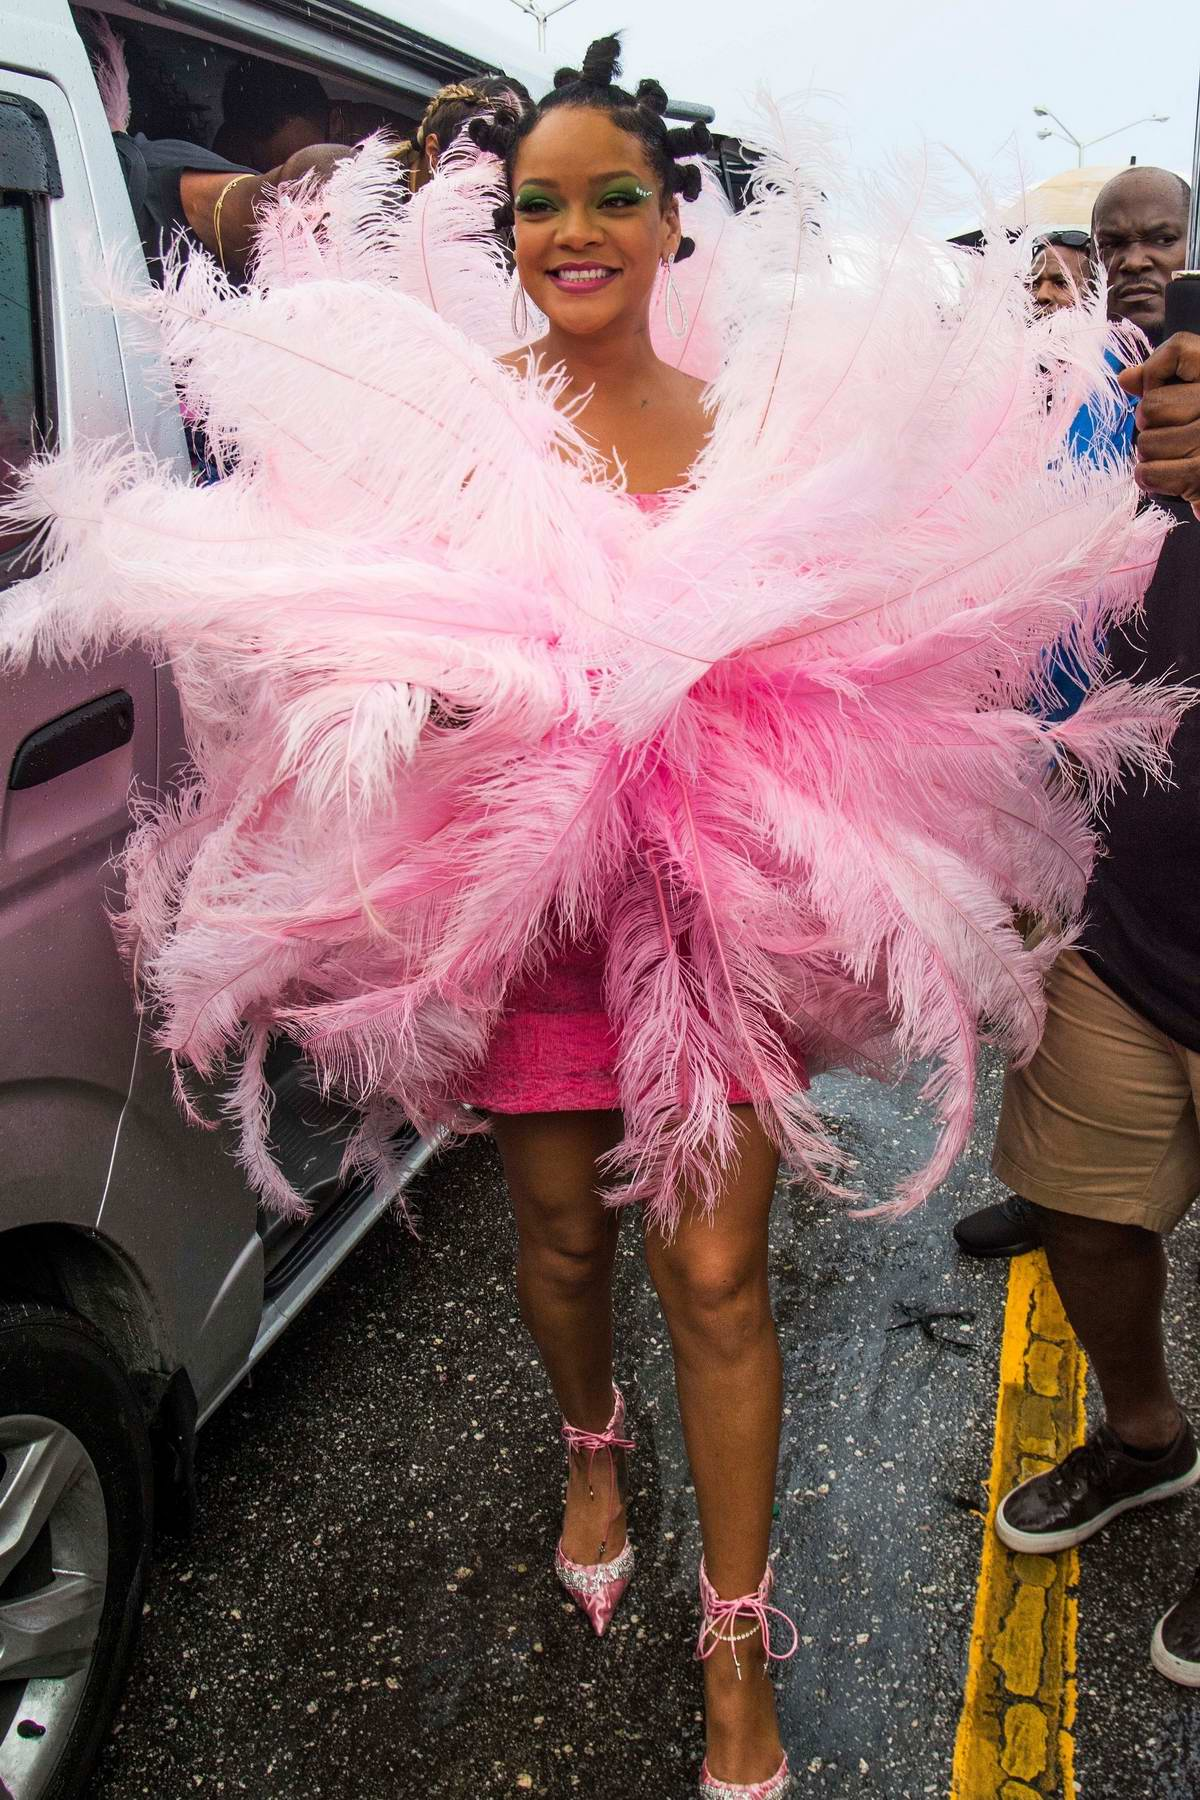 Rihanna dazzles in a pink feathered costume at annual Crop Over Festival in Barbados